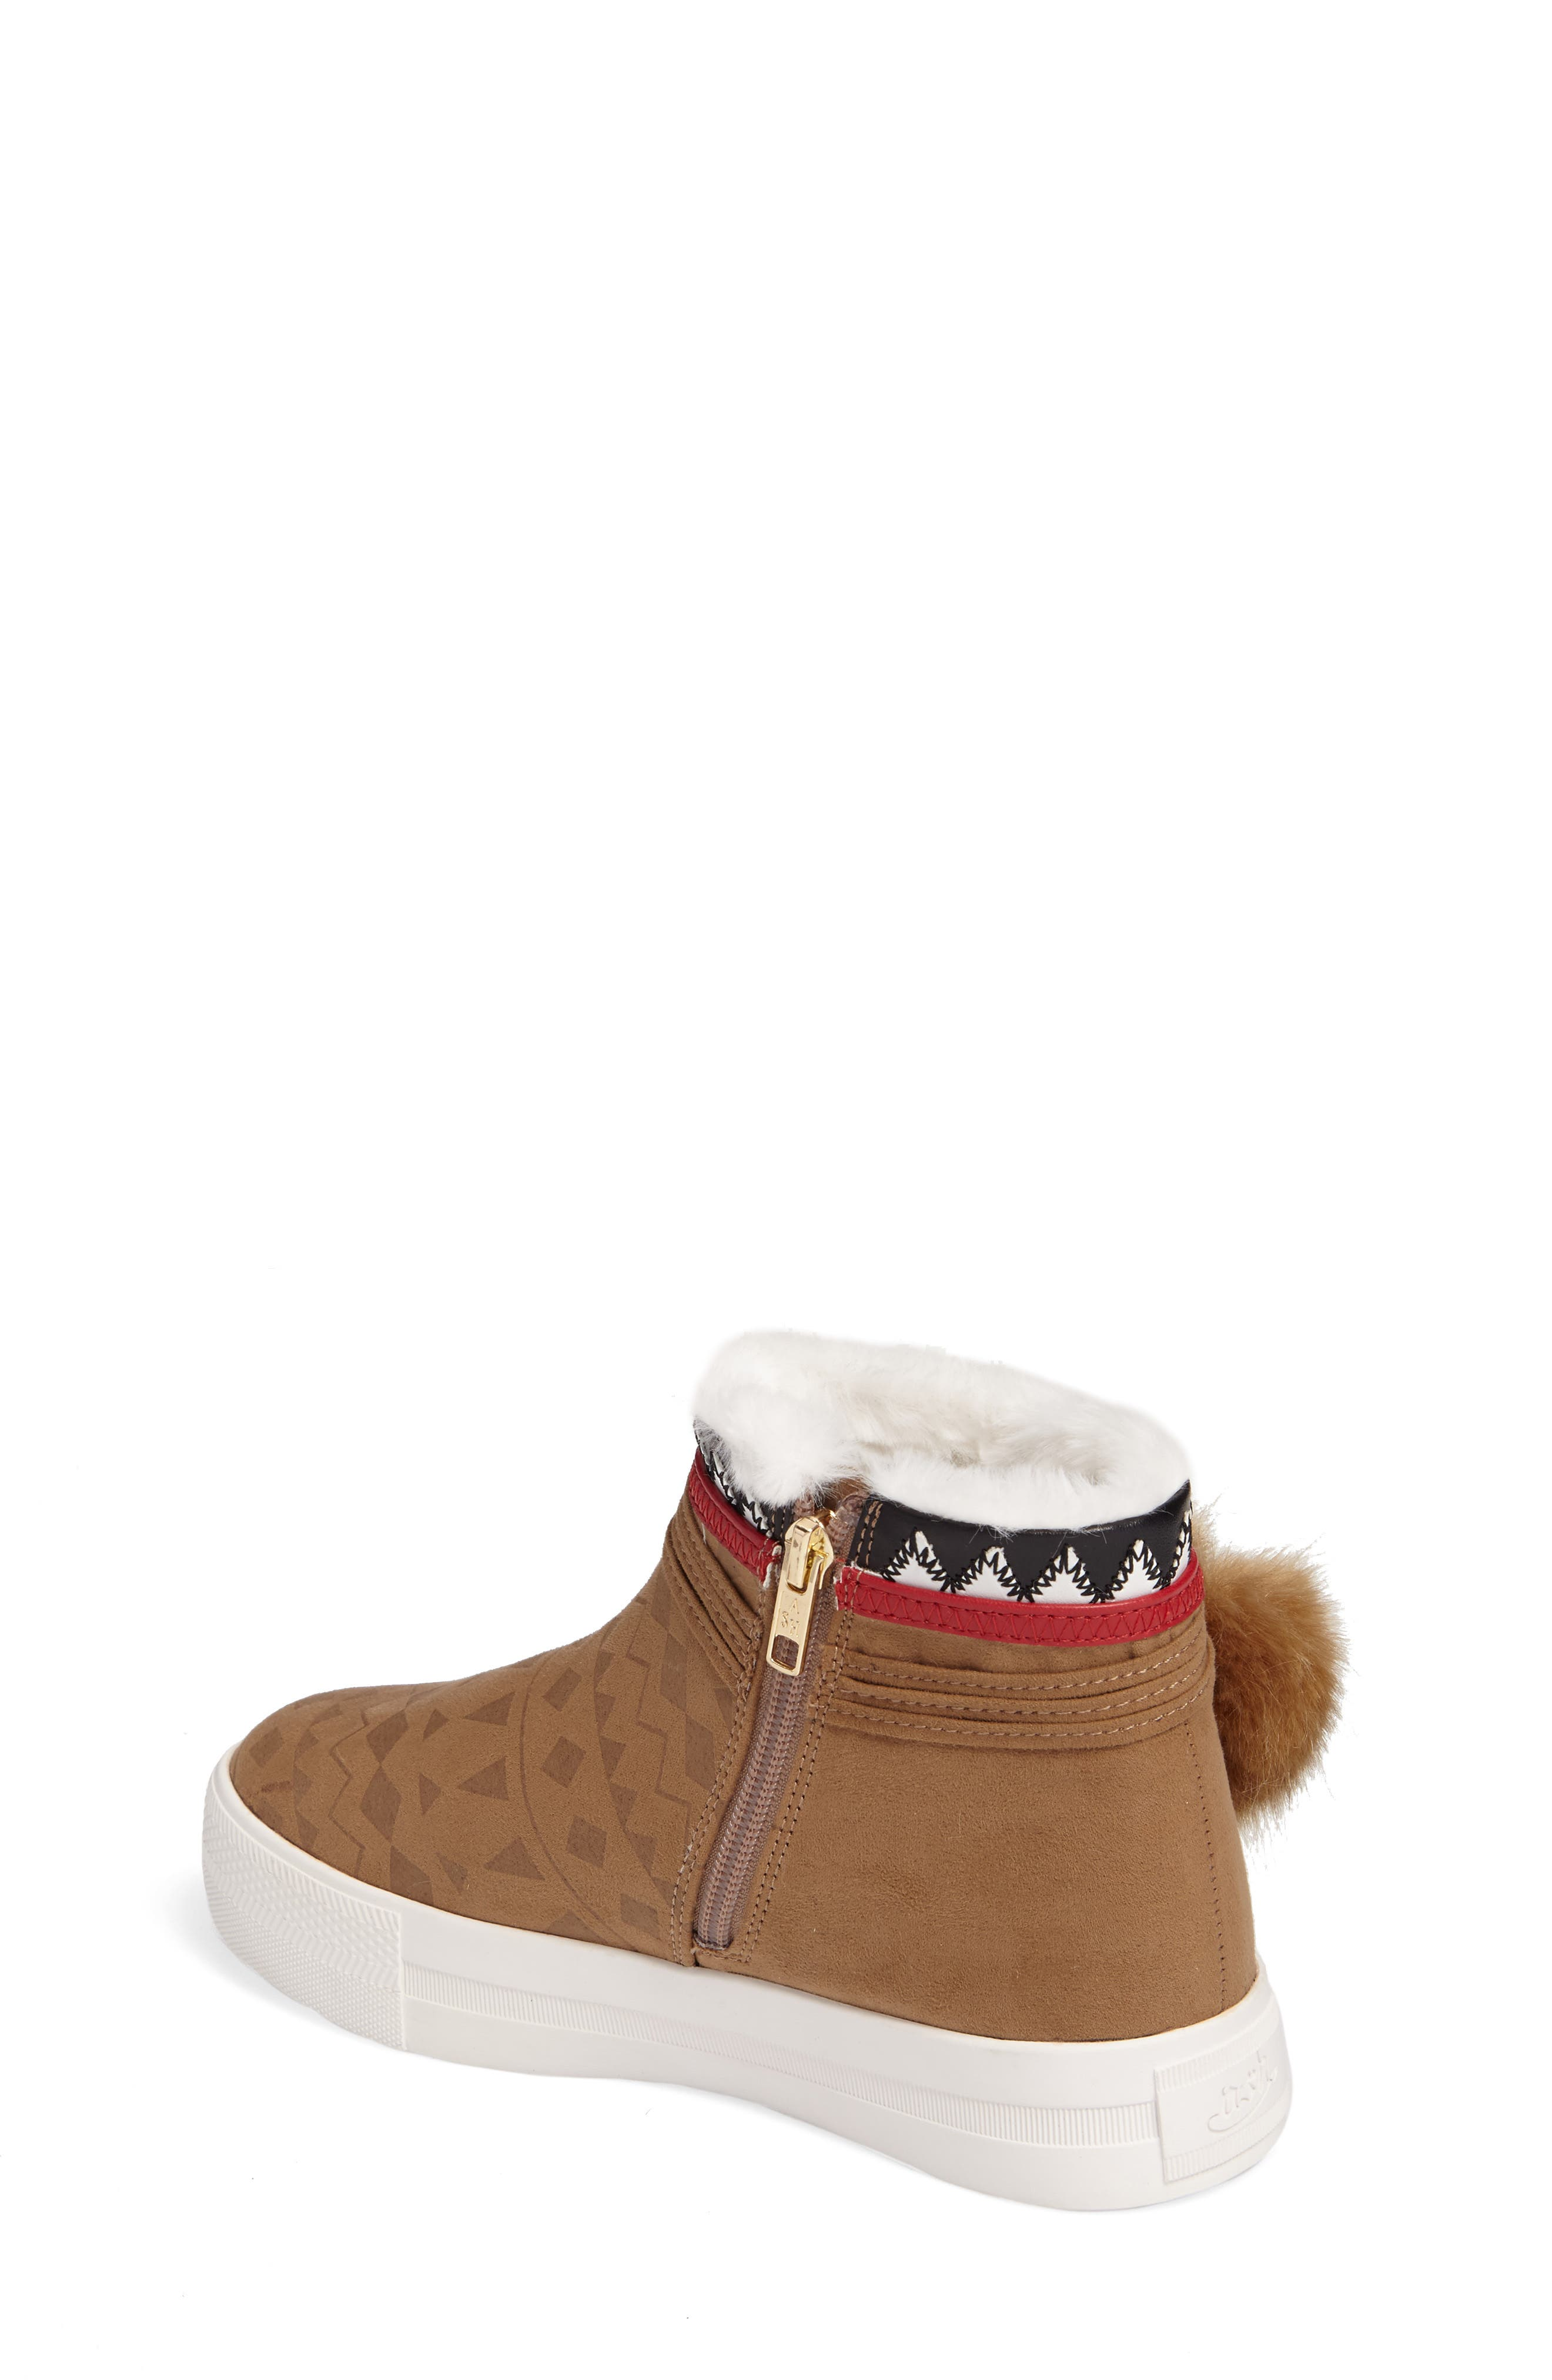 Alternate Image 2  - Ash Lynn Faux Fur Pom Sneaker Boot (Toddler, Little Kid & Big Kid)